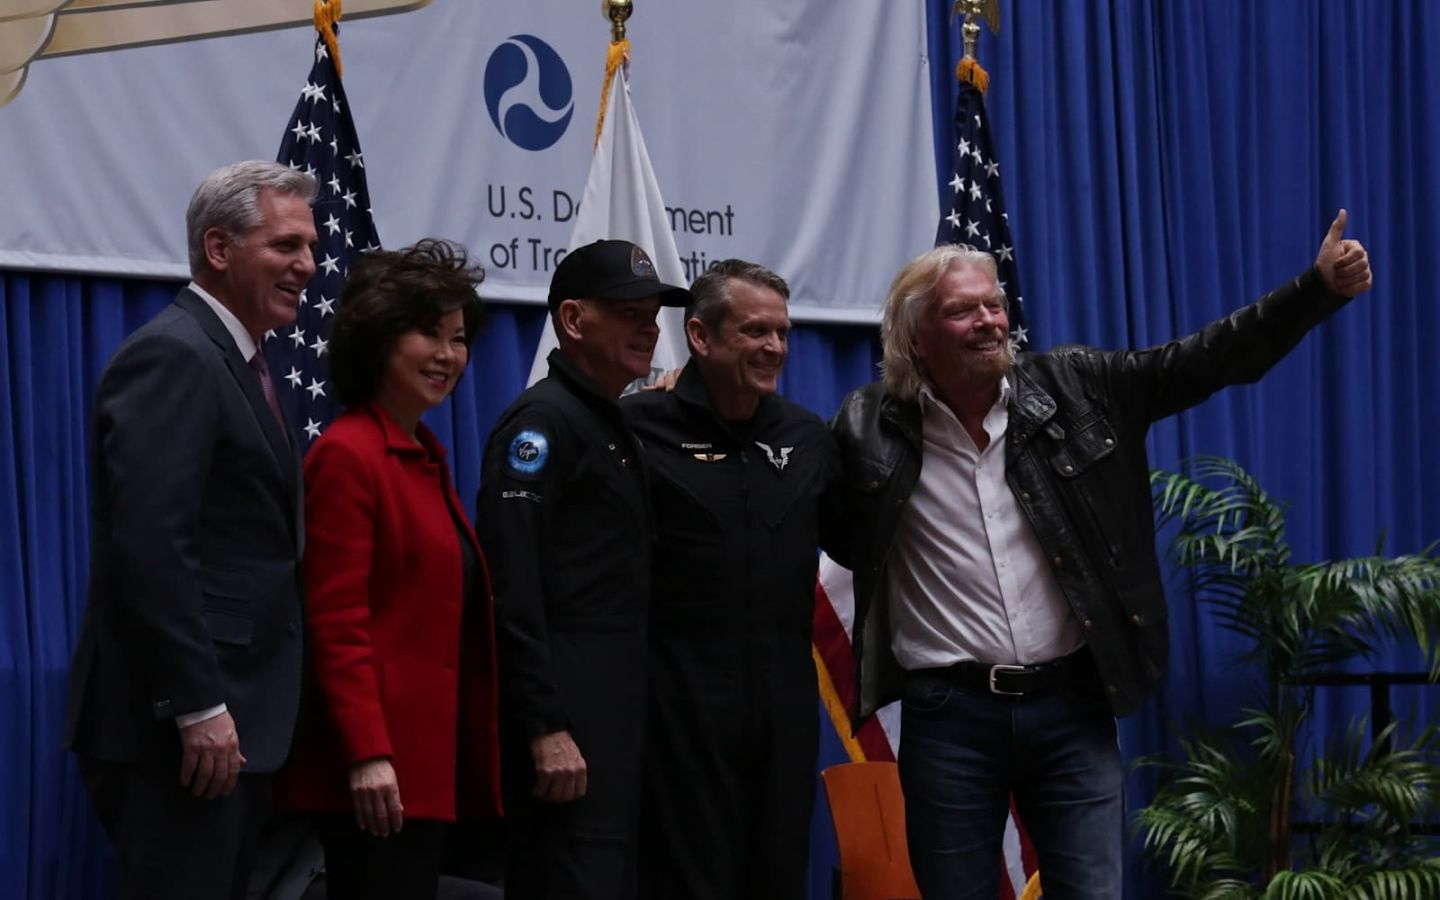 Virgin Galactic pilots Rick 'CJ' Sturckow and Mark 'Forger' Stucky receive their commercial astronaut wings